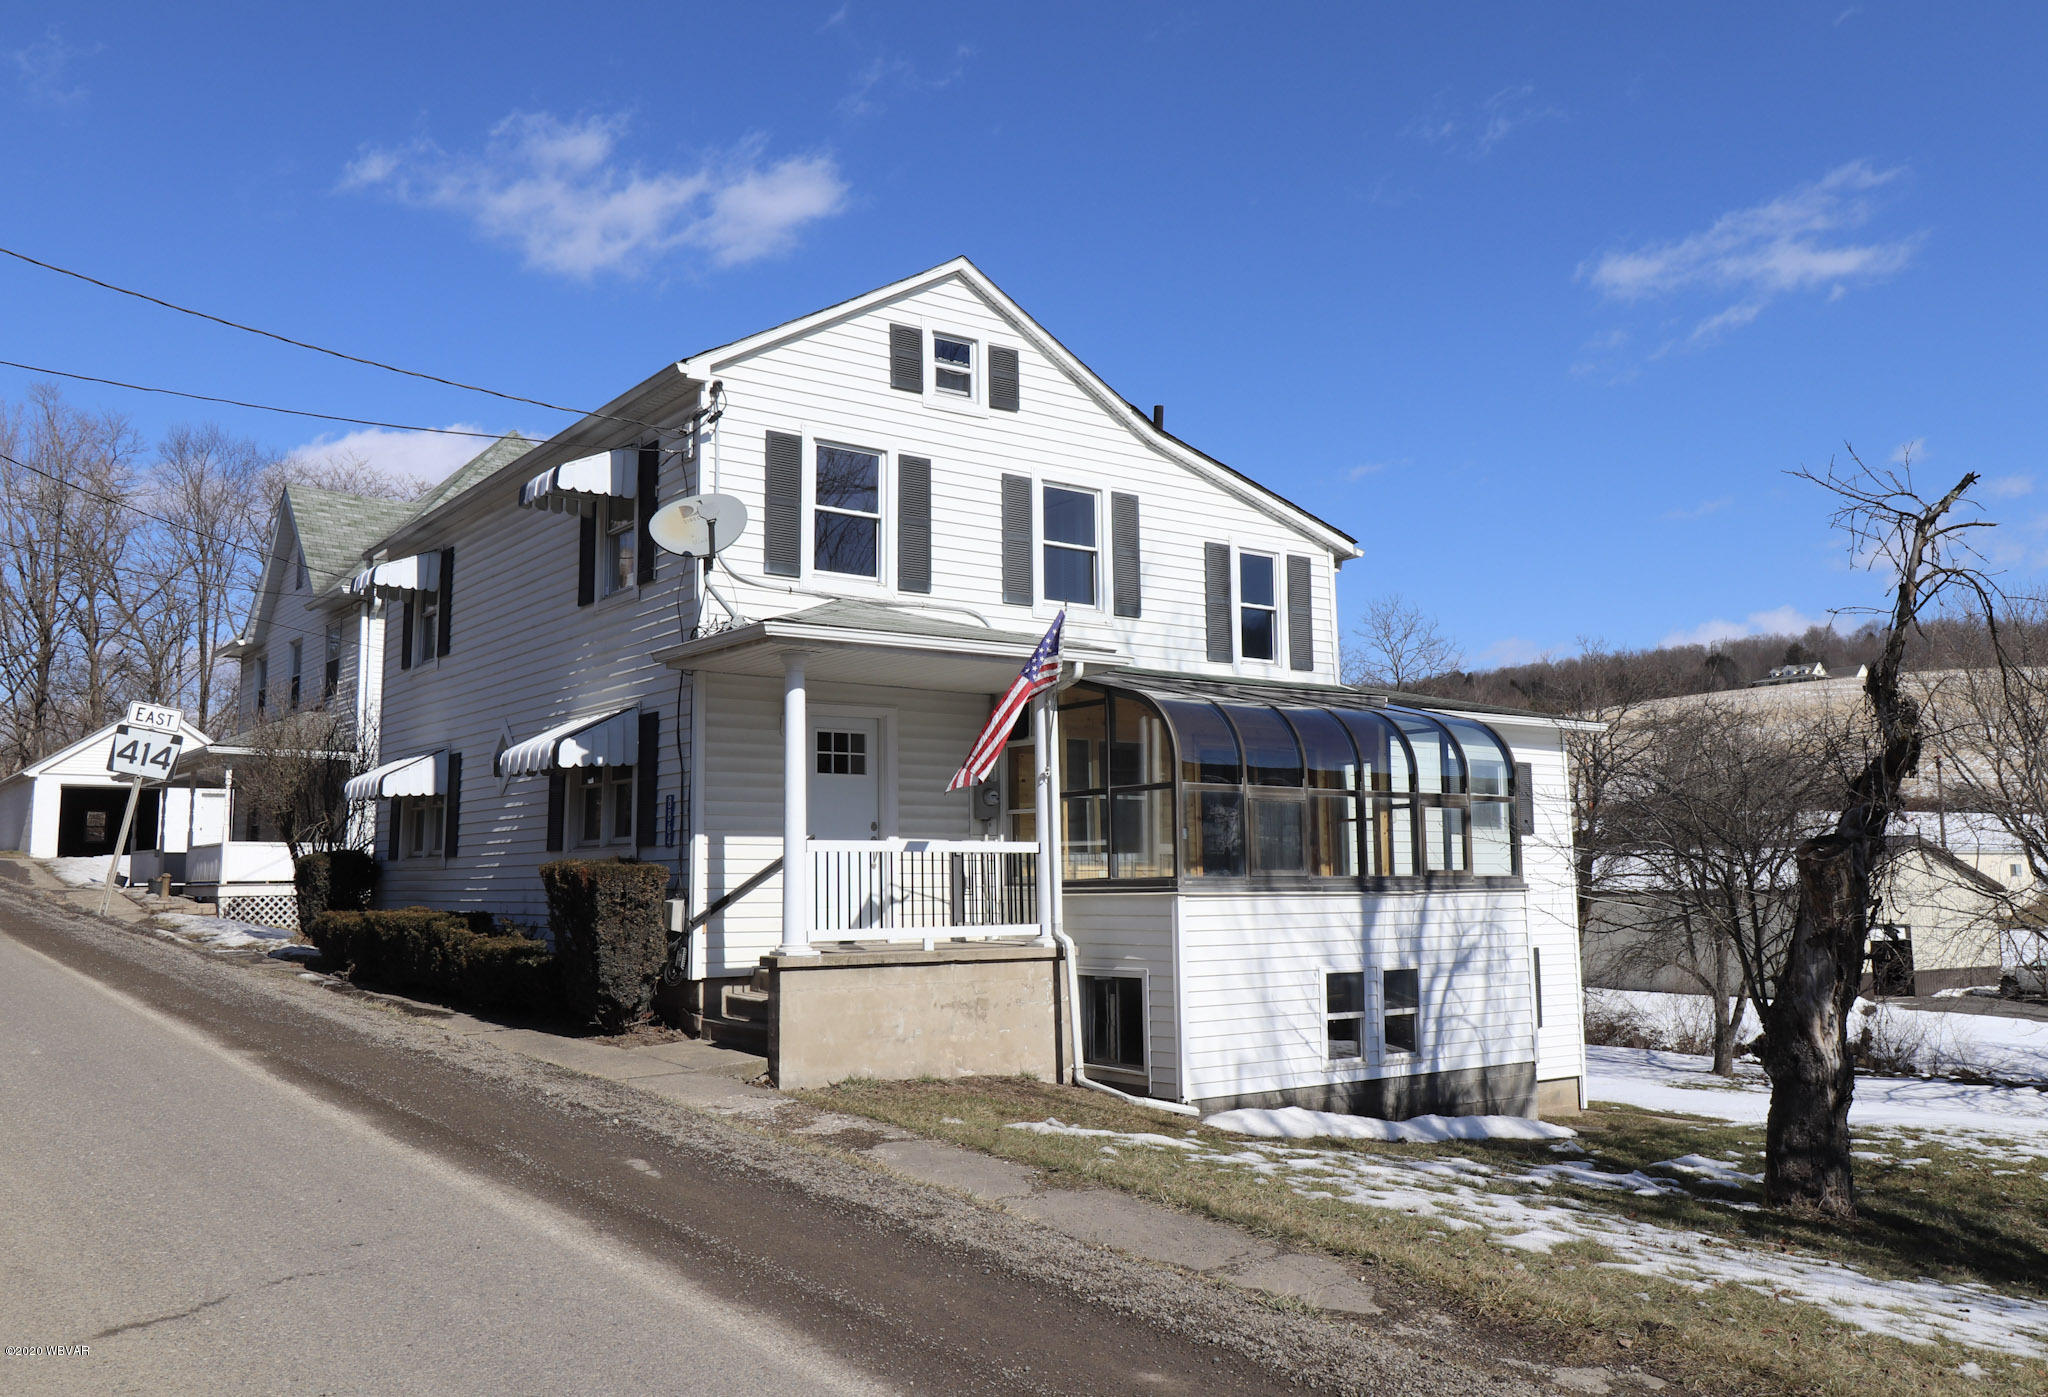 8864 STATE RTE 414 HIGHWAY, Liberty, PA 16930, 4 Bedrooms Bedrooms, ,3 BathroomsBathrooms,Residential,For sale,STATE RTE 414,WB-89648